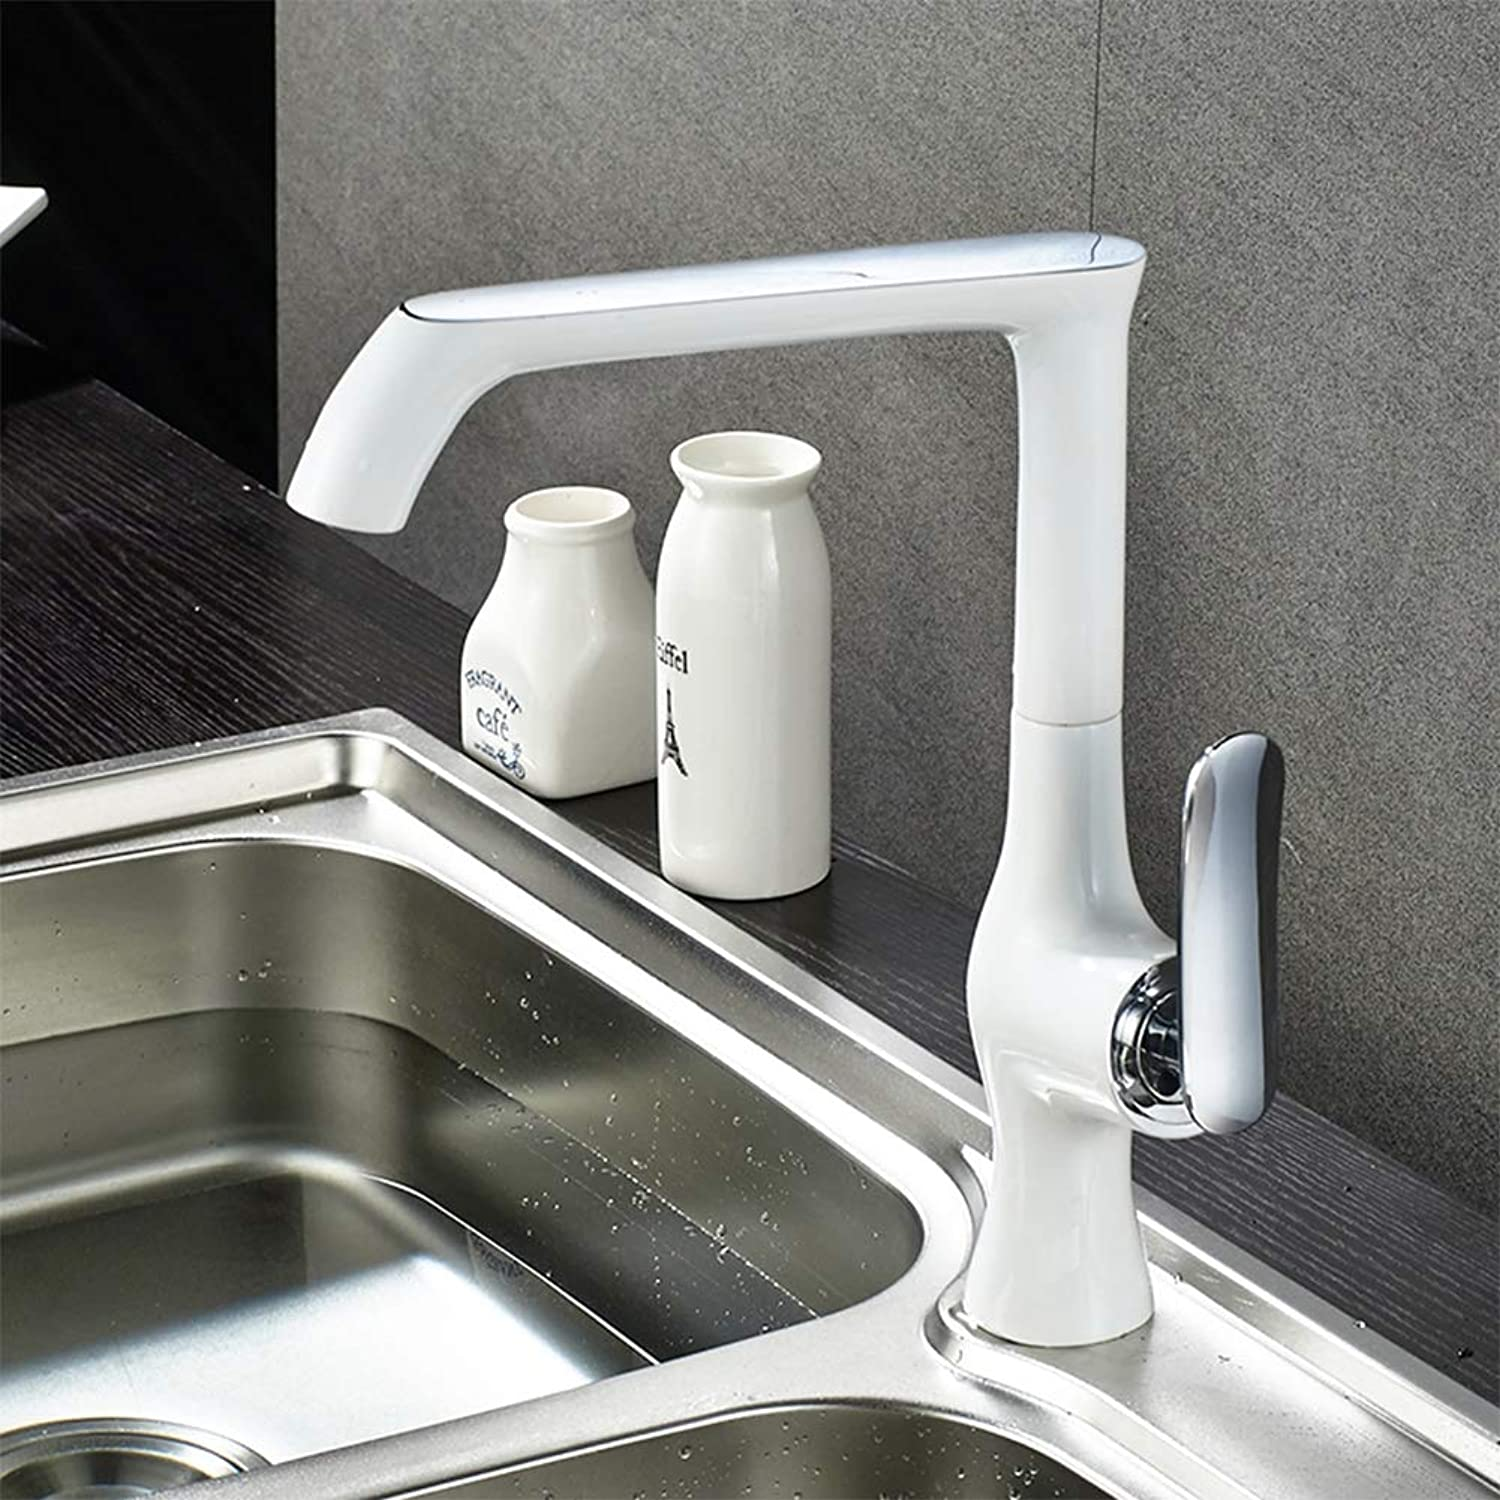 White Kitchen Tap 360 Degree redating Brass Faucet Cold and Hot Water Mixer Kitchen Sink Basin Tap,White